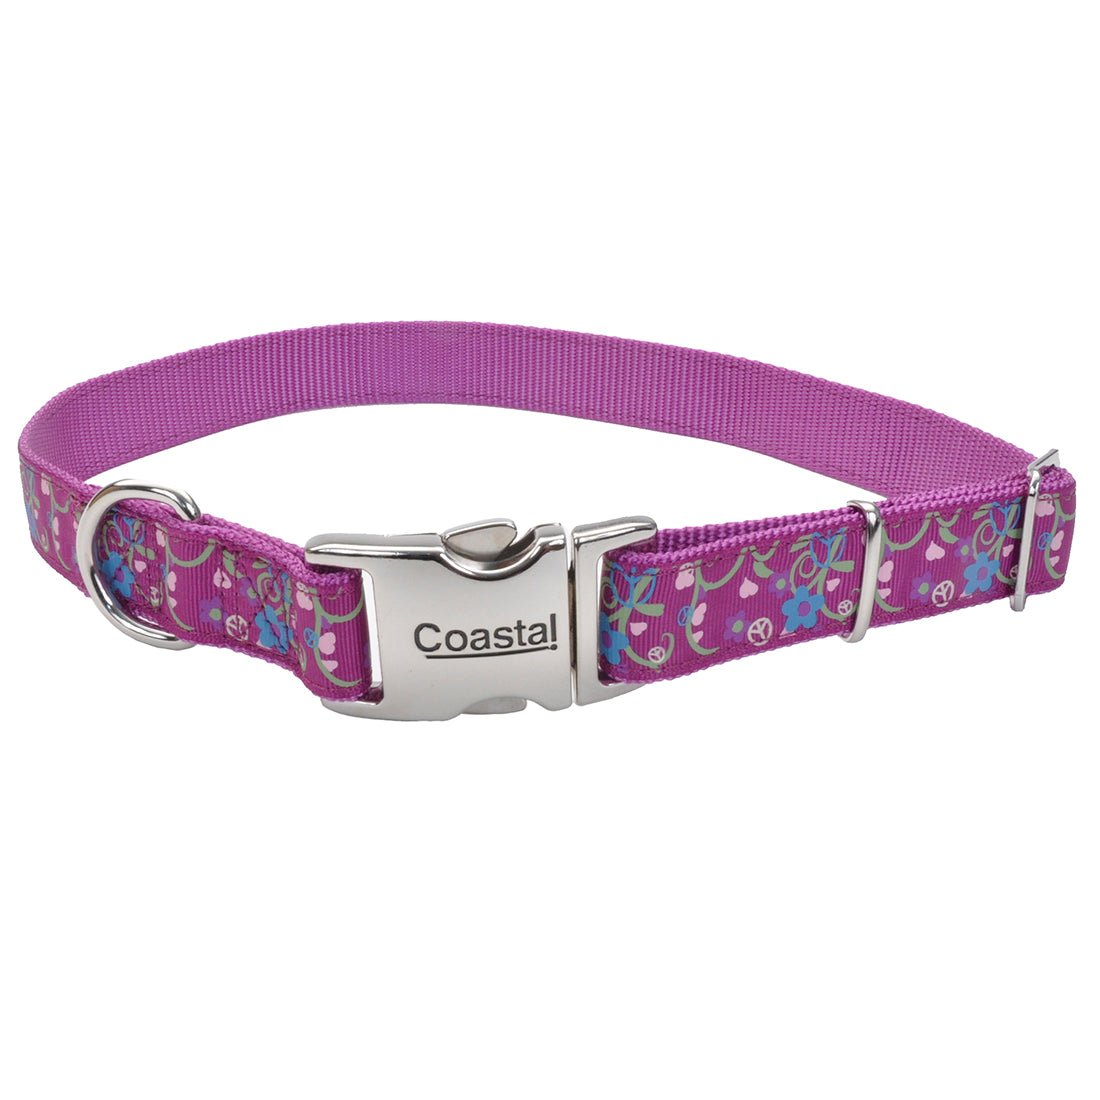 "Coastal Pet Attire Ribbon Designer Adjustable Collar 8-12"" - 5/8"" Orchid Bouquet"